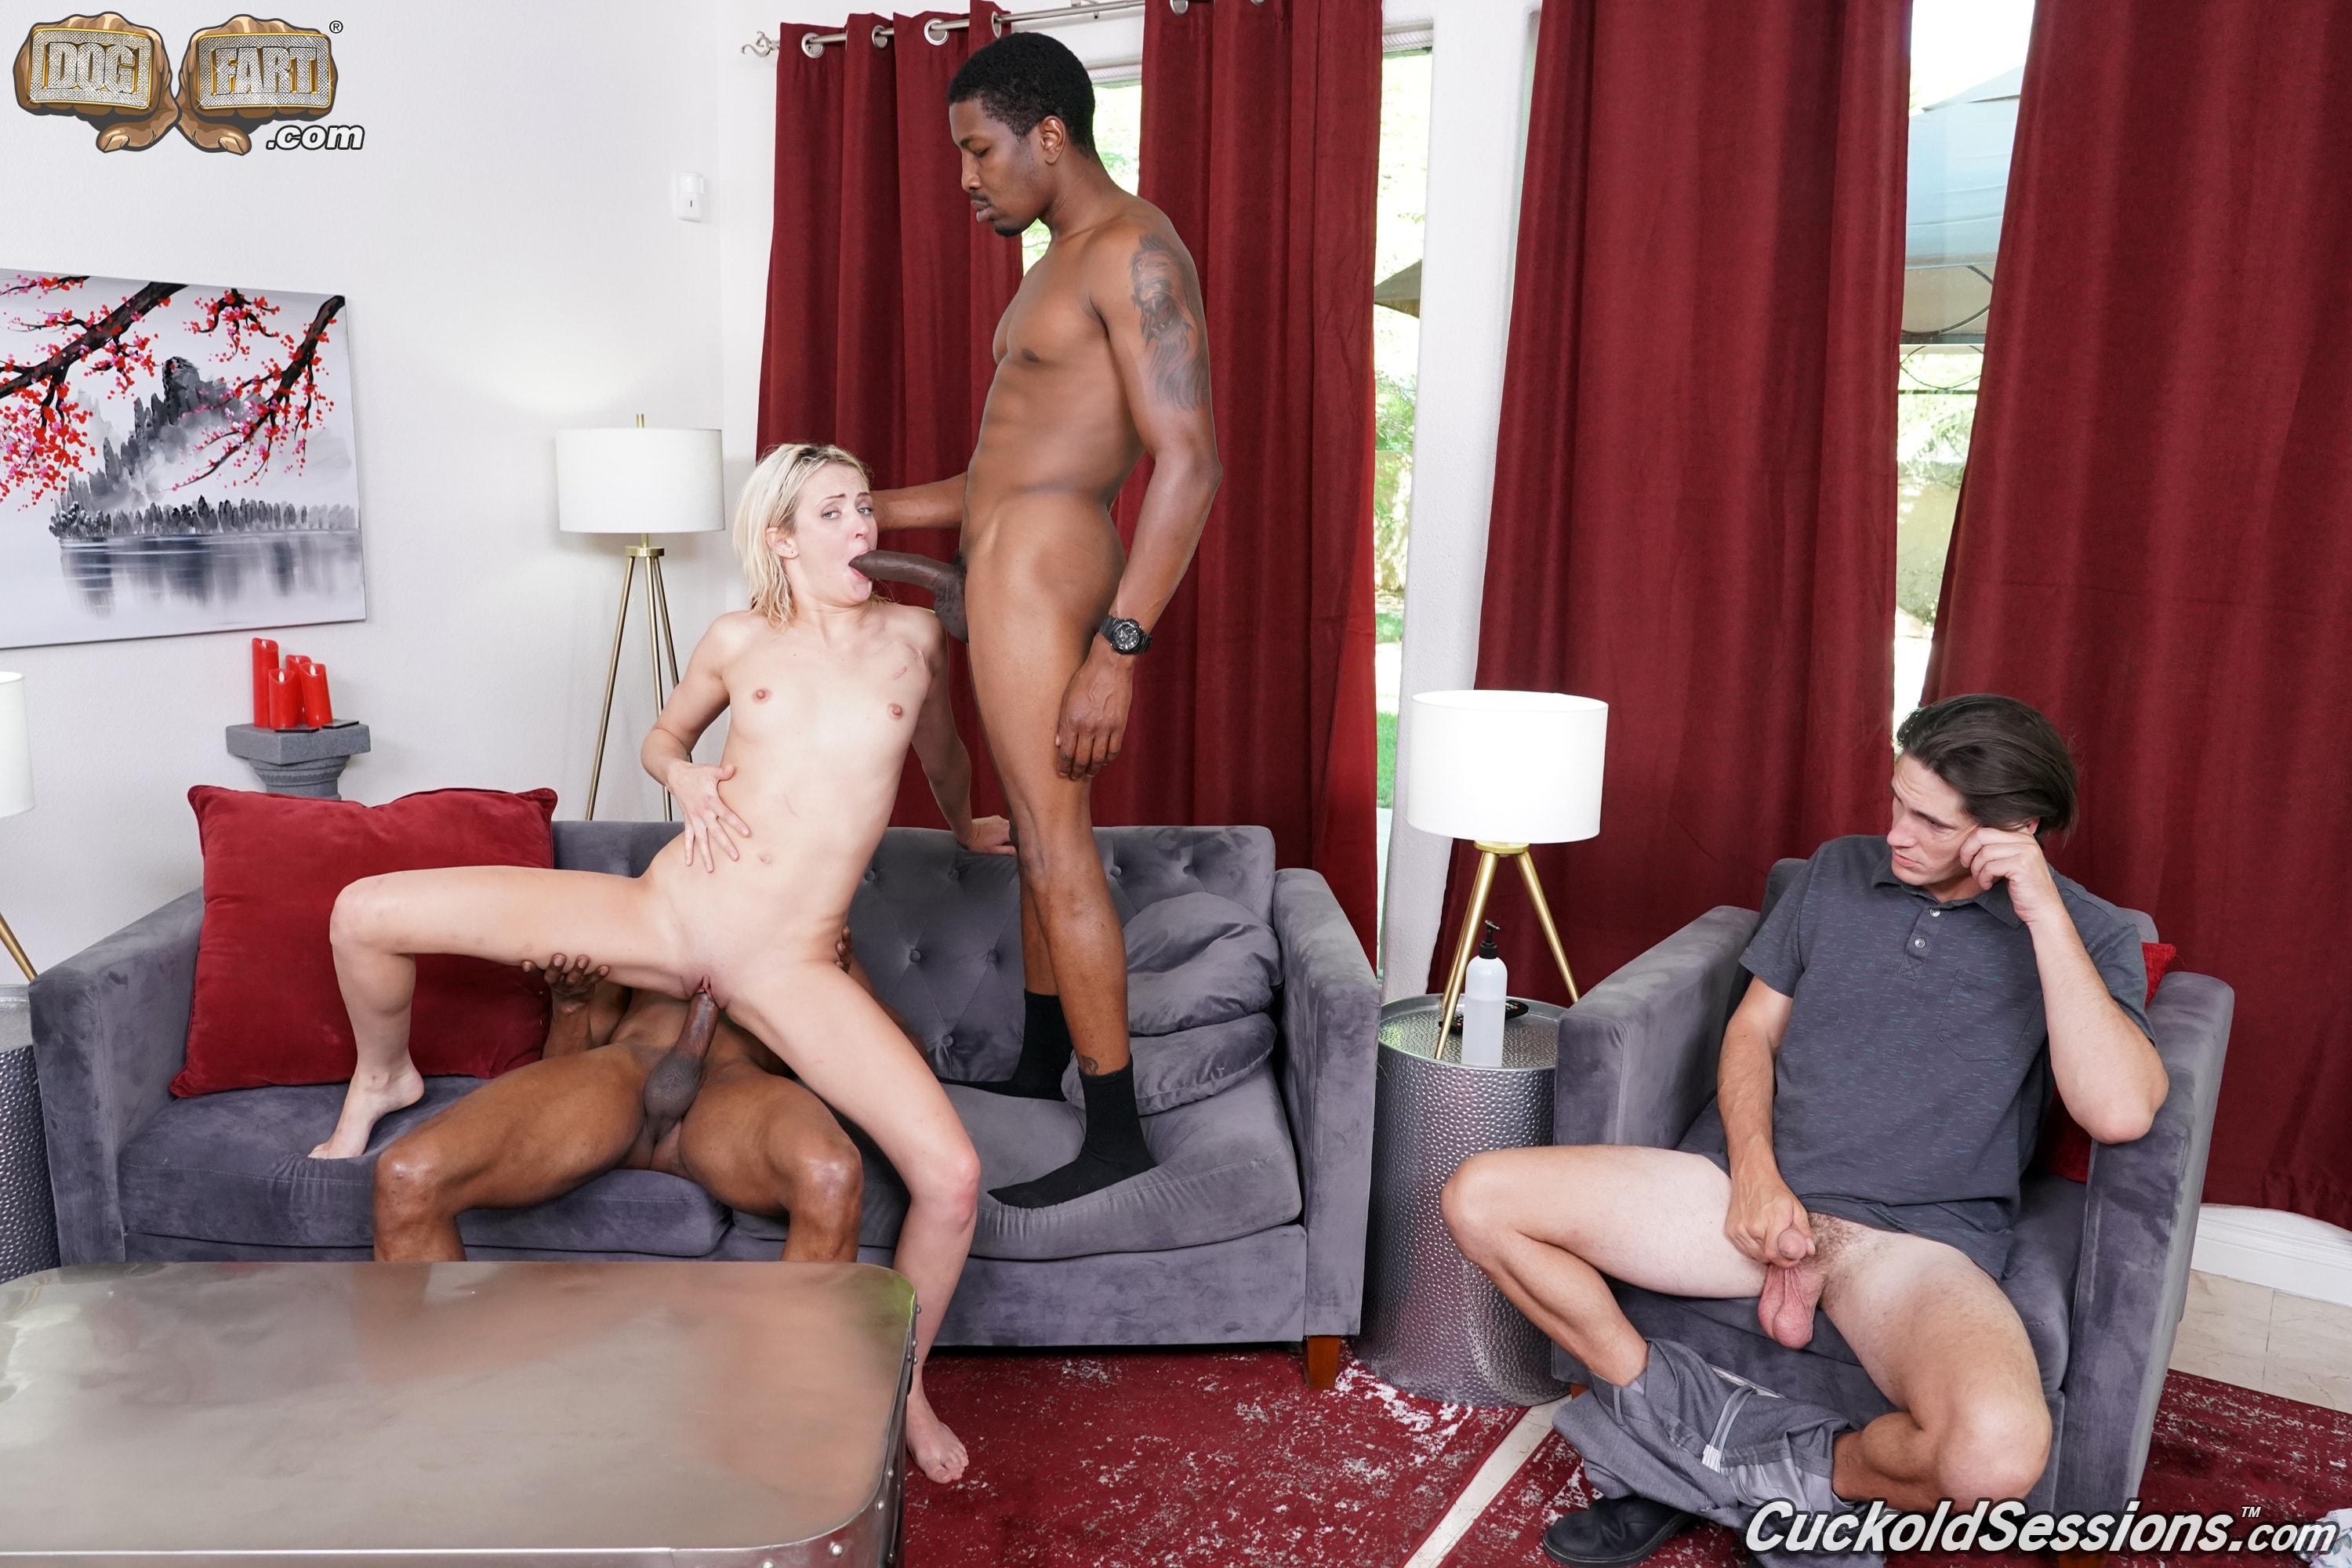 Dogfart '- Cuckold Sessions' starring Zoe Sparx (Photo 24)